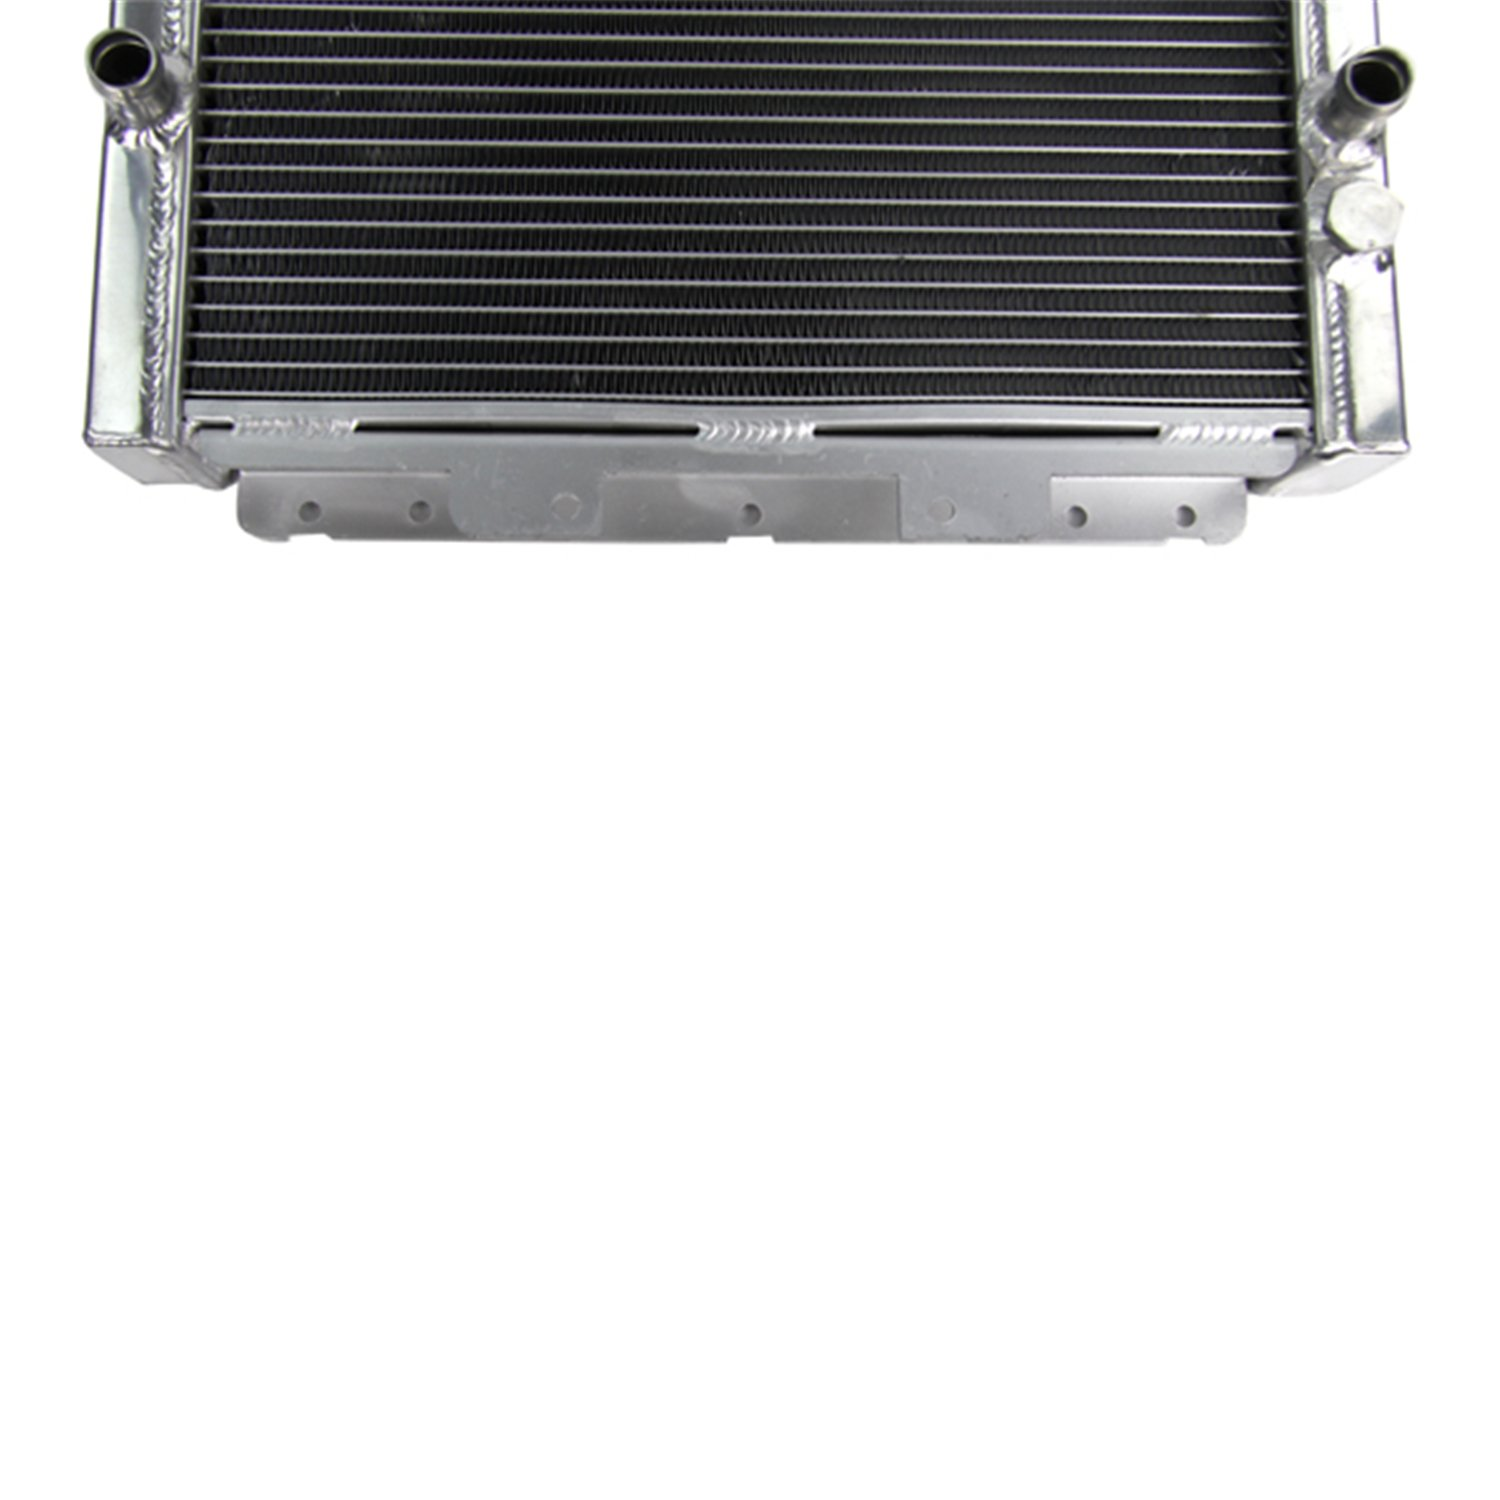 Alloyworks 3 Row Aluminum Radiator For Yamaha Rhino 450 660 Fuel Filter 2006 2009 2004 2007 Automotive